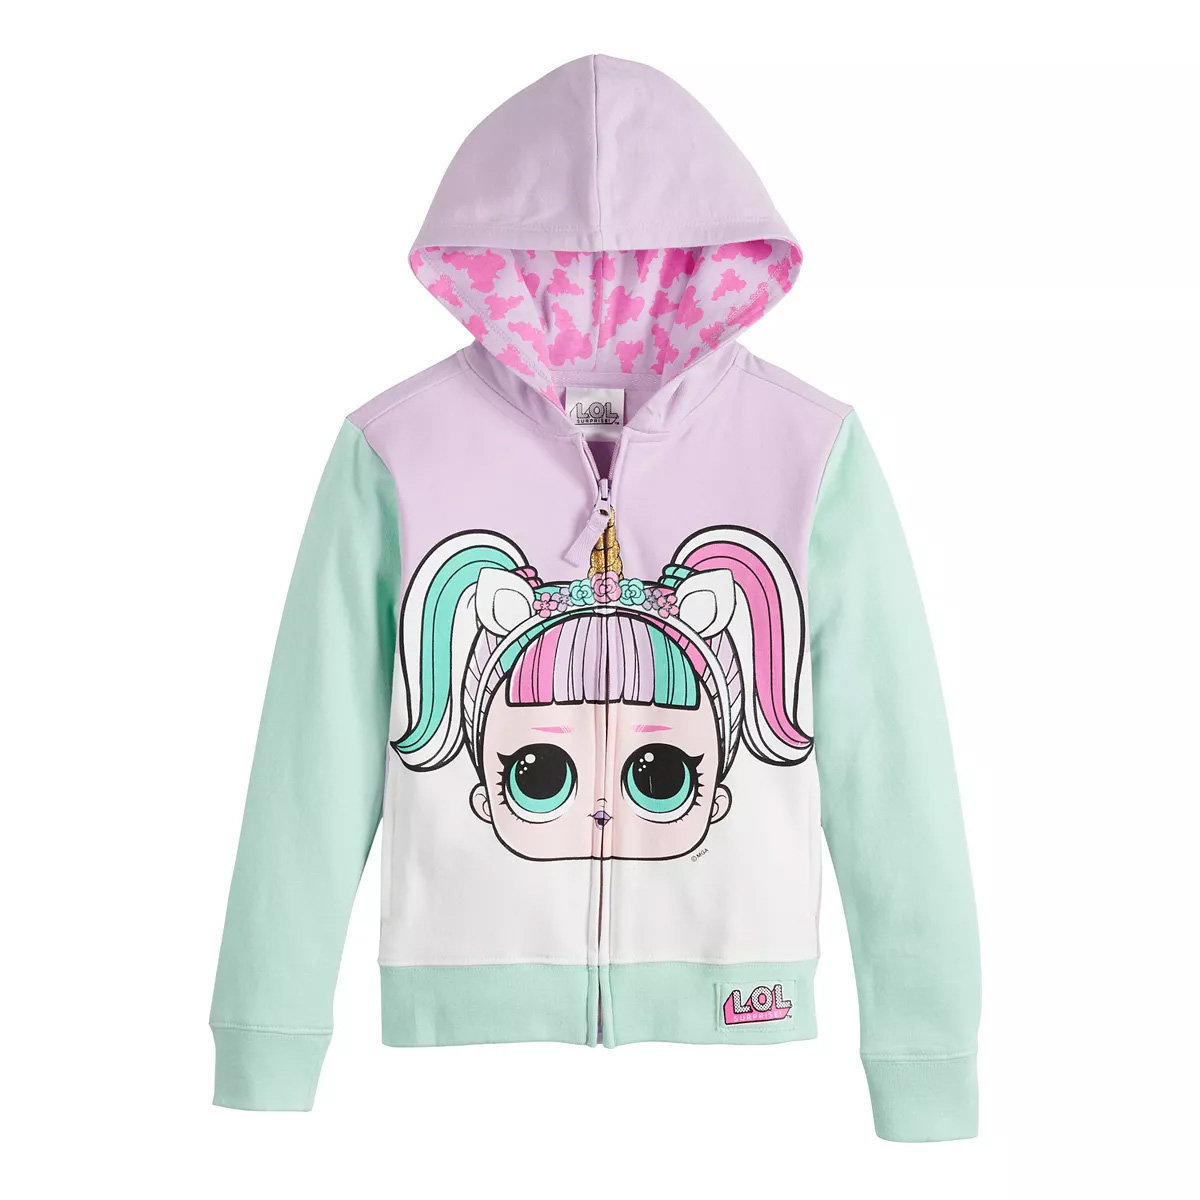 L.O.L. Surprise Character Hoodie (4-5yr) (parallel)